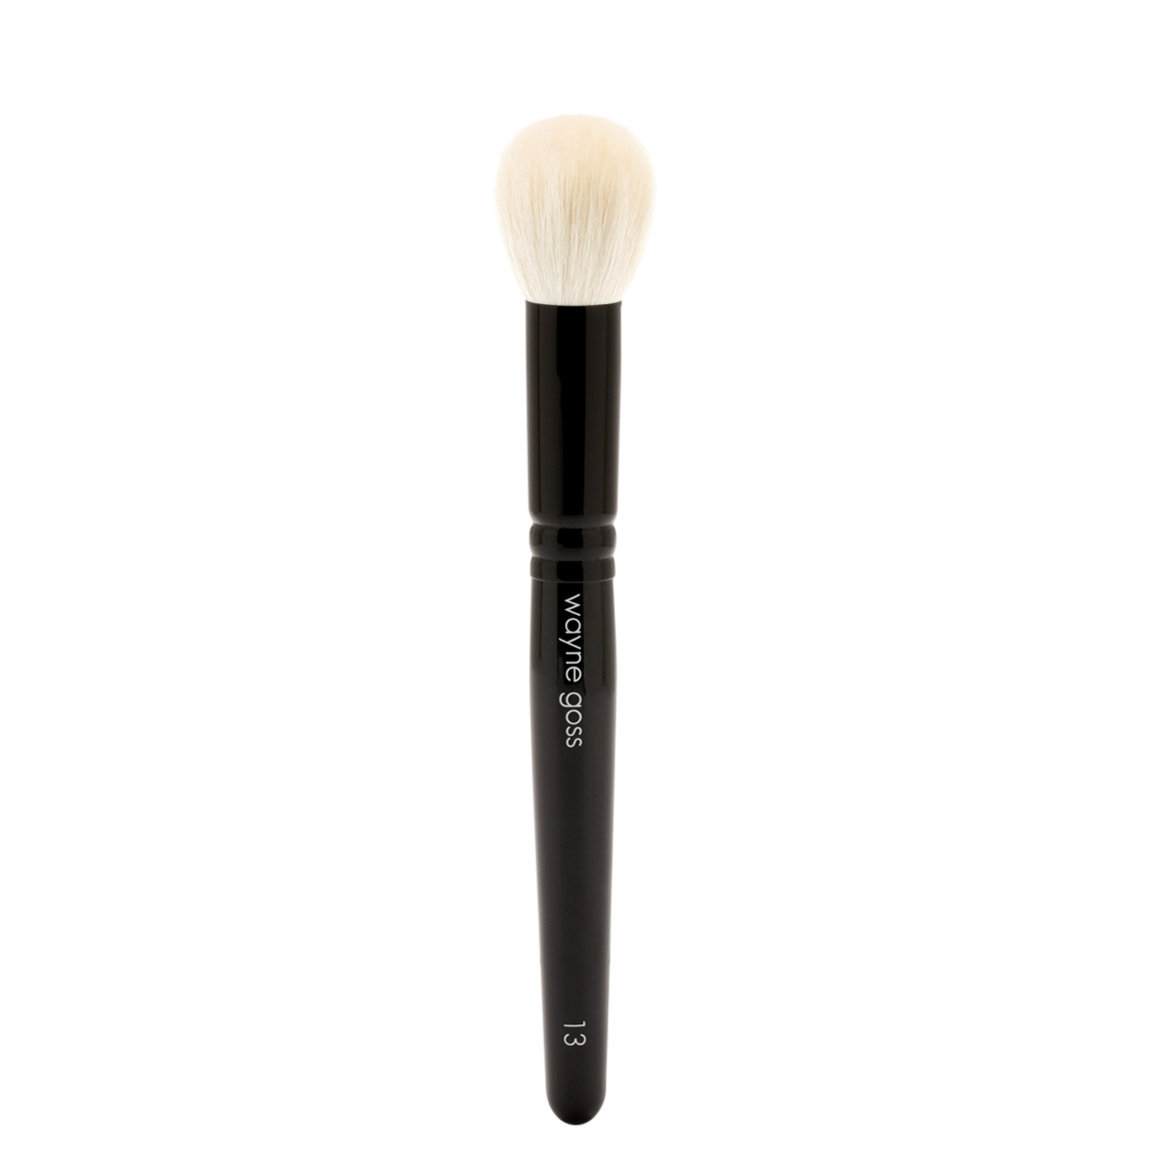 Wayne Goss Brush 13 Face Brush